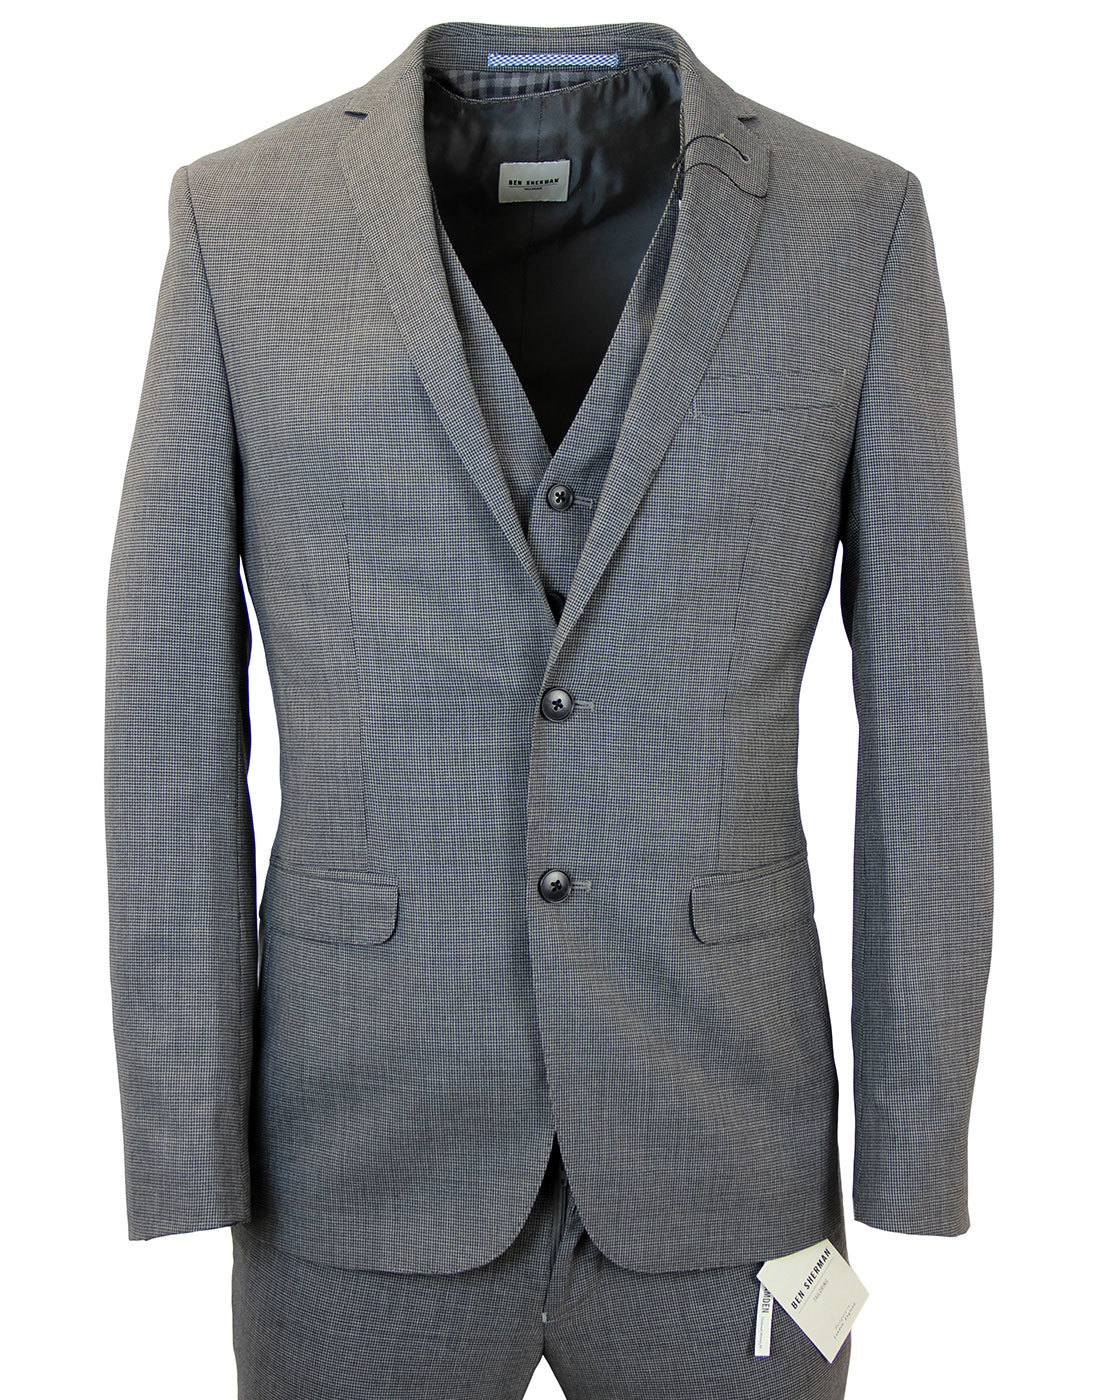 BEN SHERMAN Micro Dogtooth 3 Piece Suit